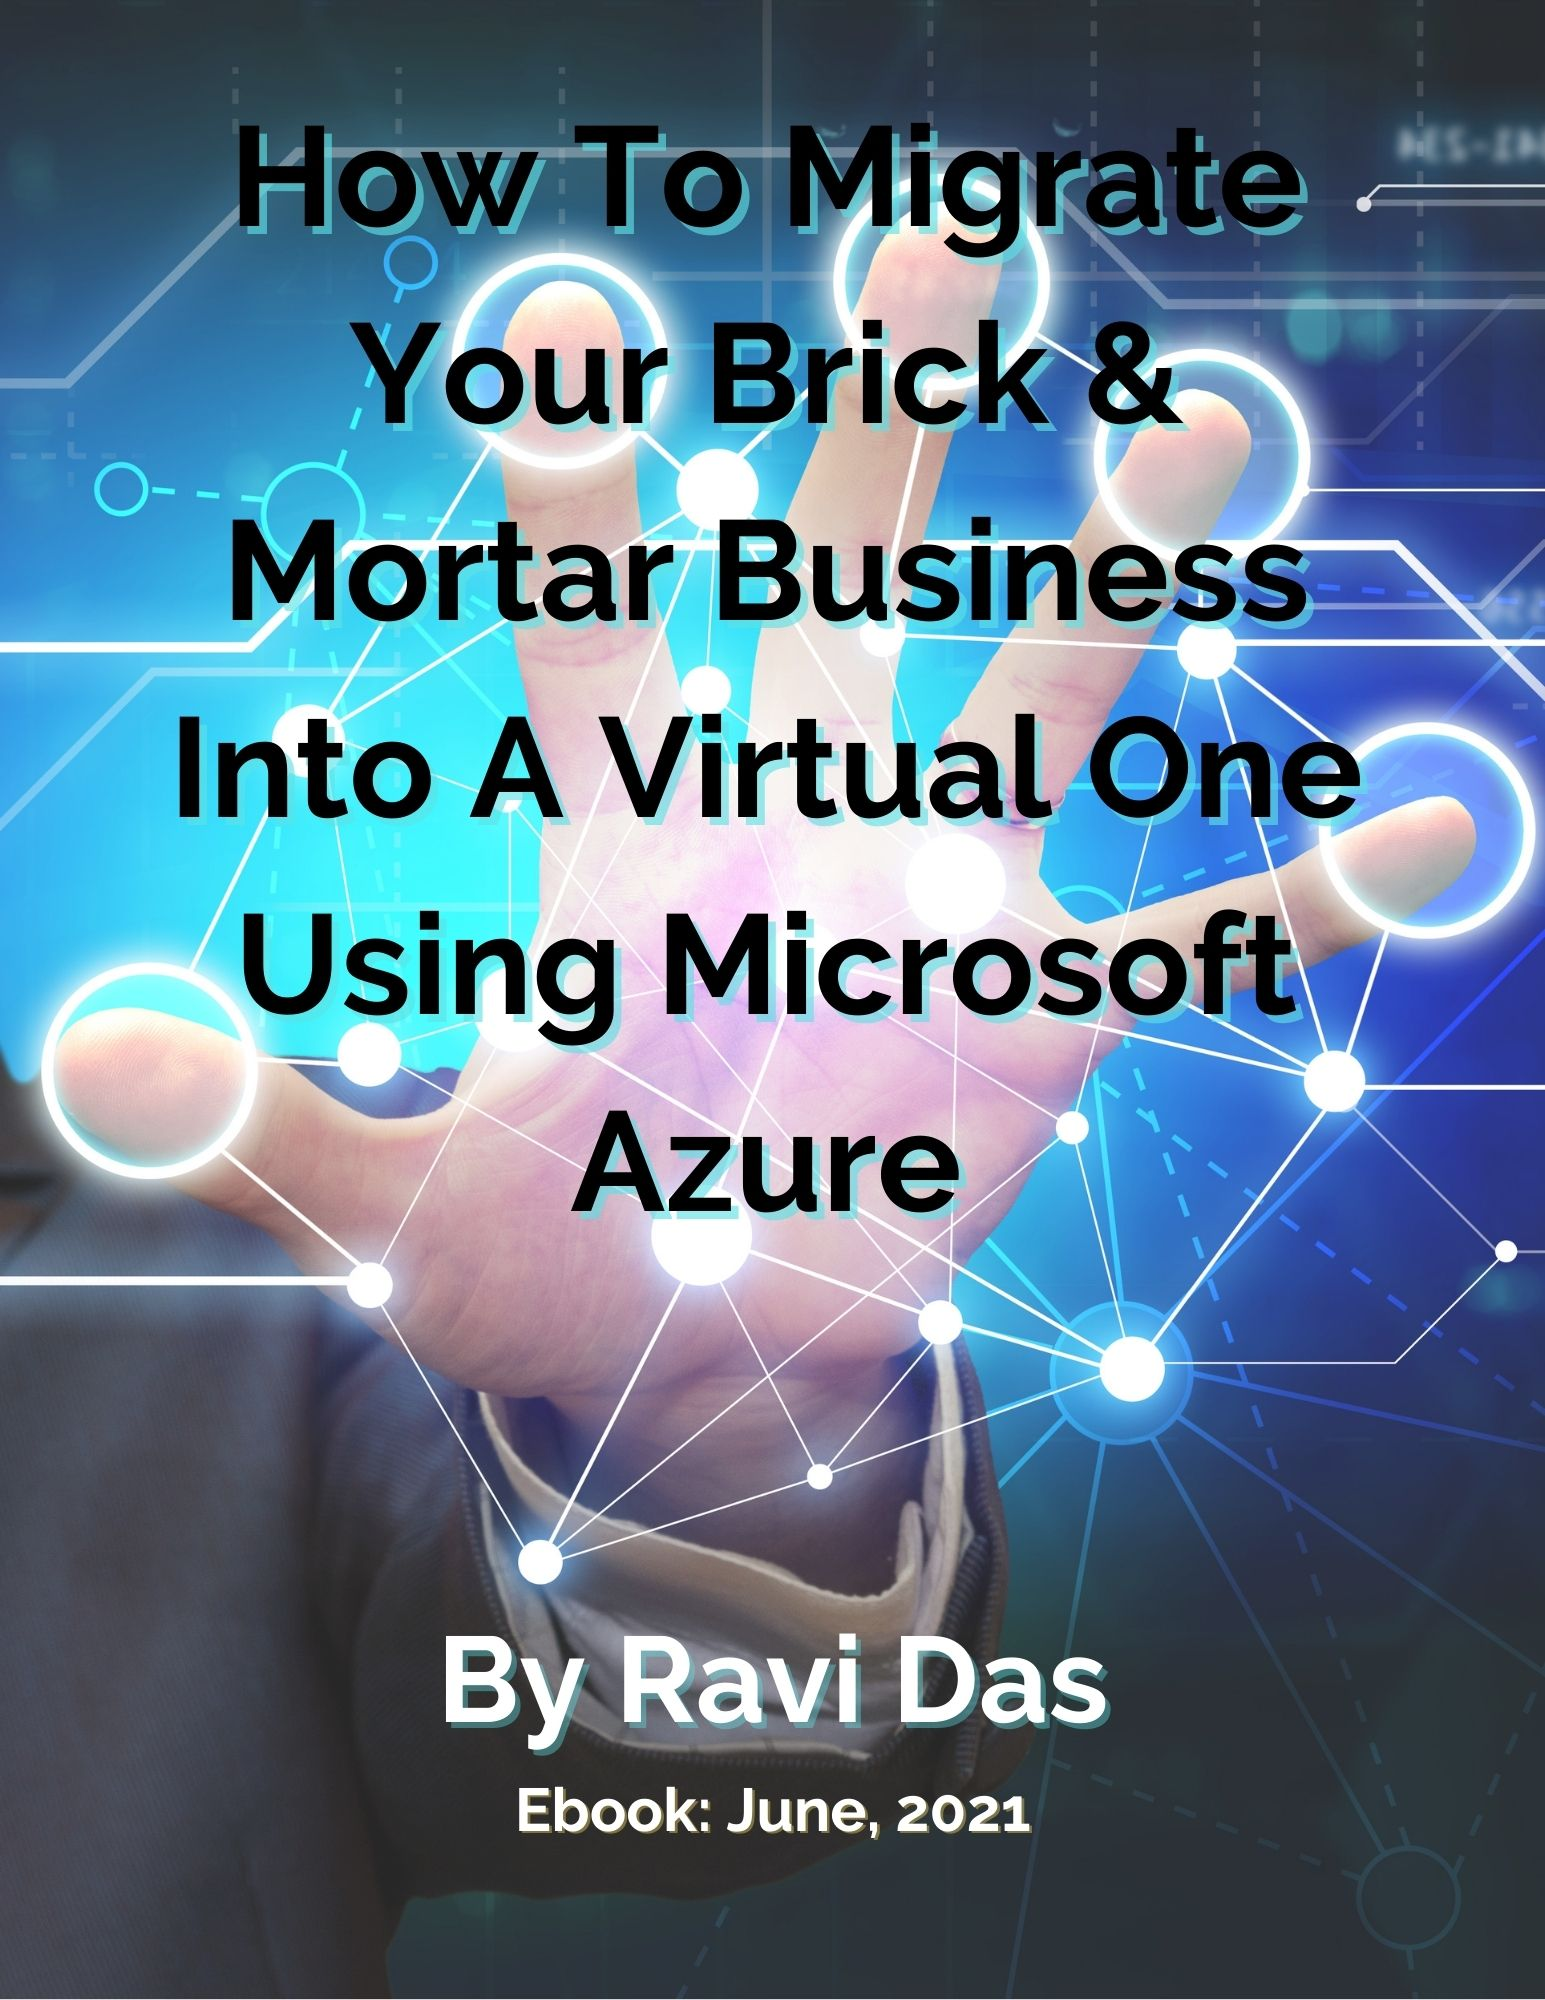 How To Migrate Your Brick & Mortar Business Into A Virtual One Using Microsoft Azure